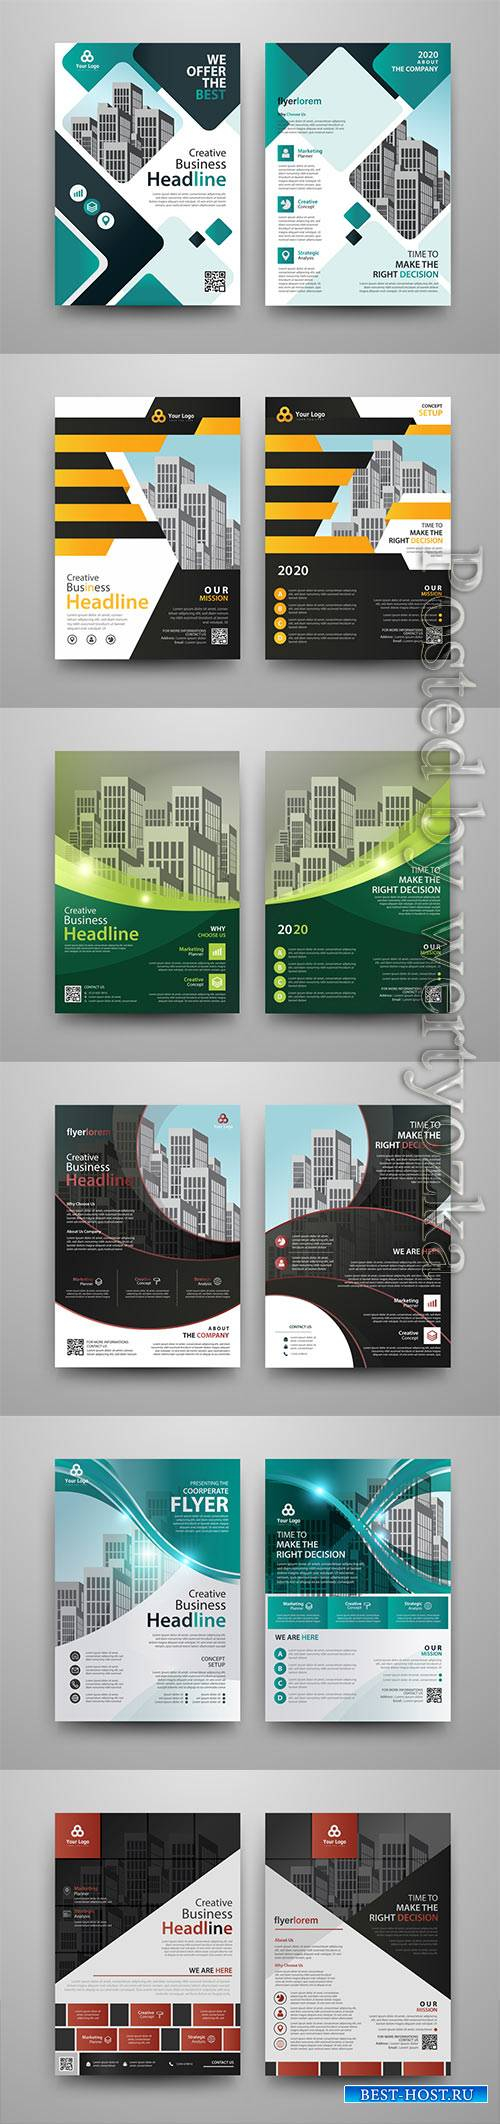 Business vector template for brochure, annual report, magazine # 19